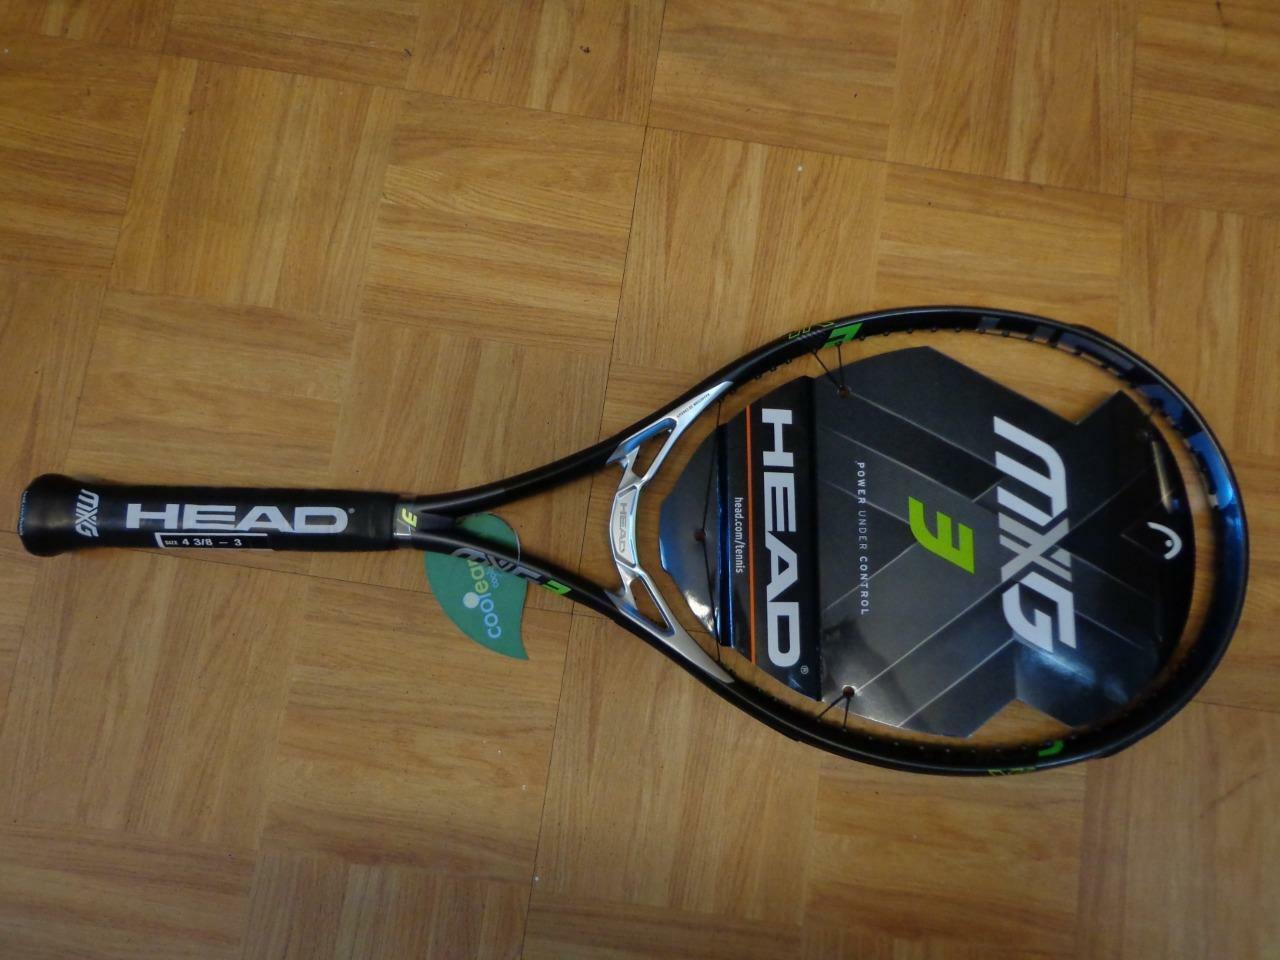 NEW 2017 Head MXG 3 Midplus 100 head 16x18 10.4oz 4 1/4 grip Tennis Racquet